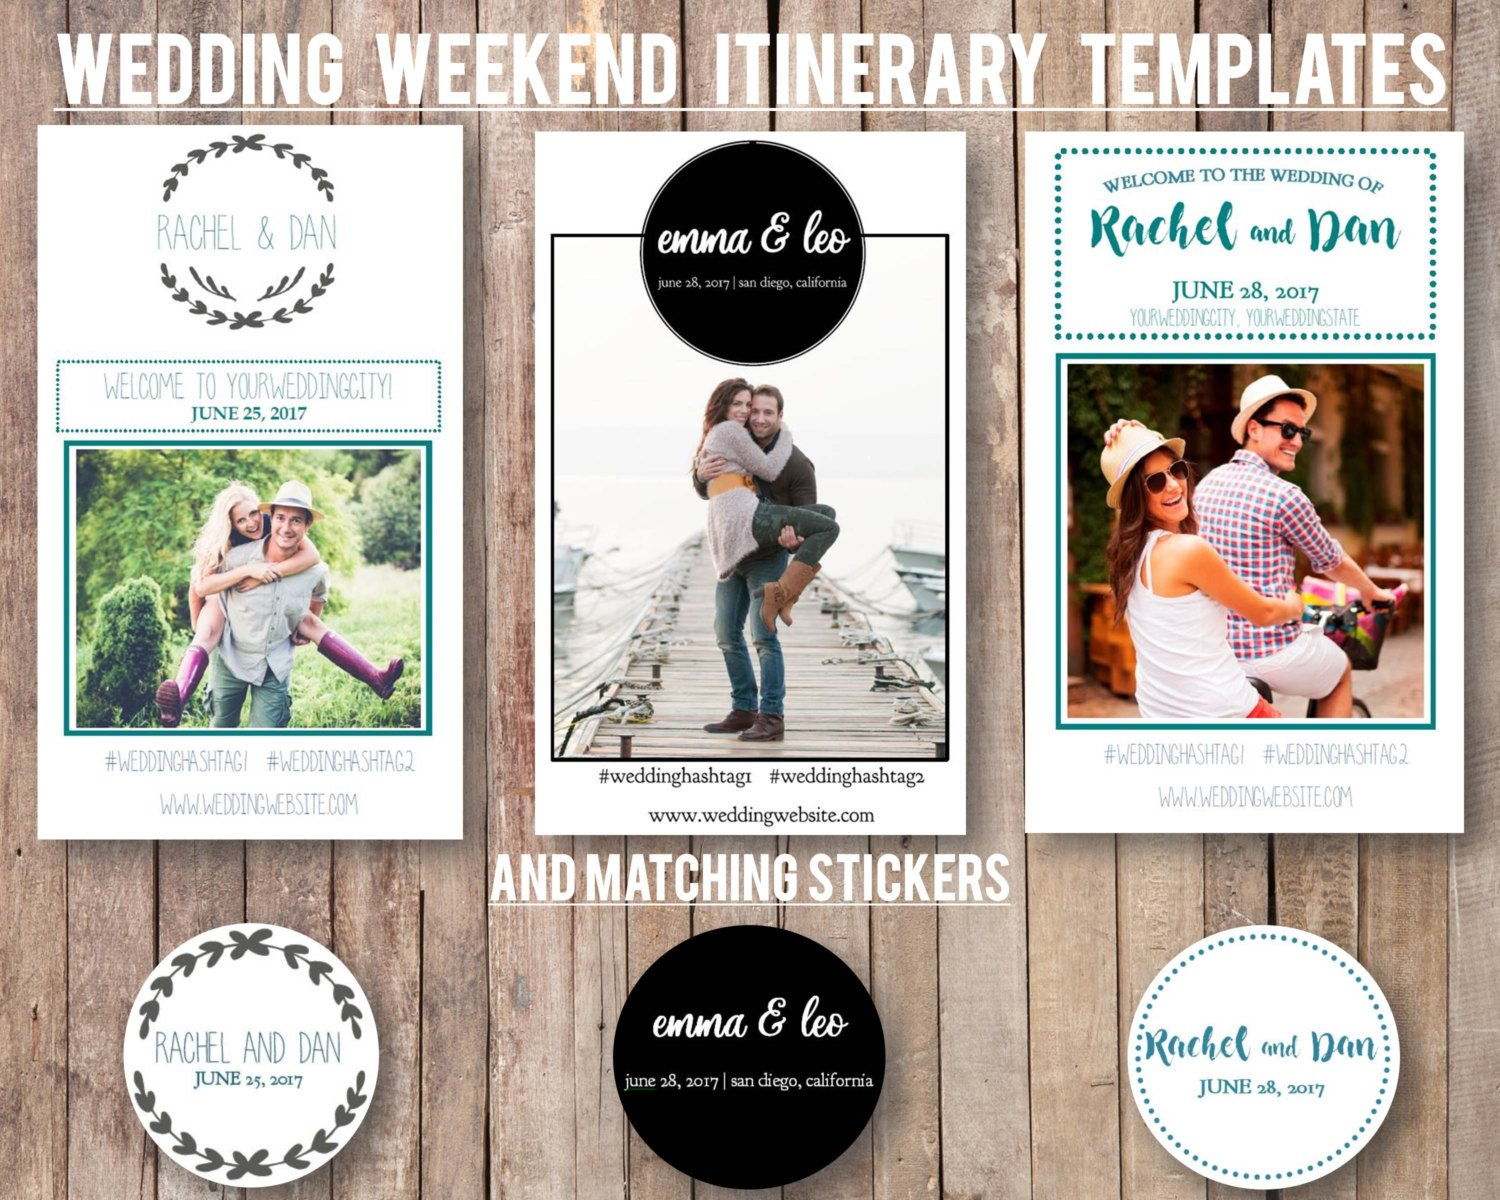 Wedding Weekend Itinerary Template Wedding Weekend Diy Itinerary Schedule Template by